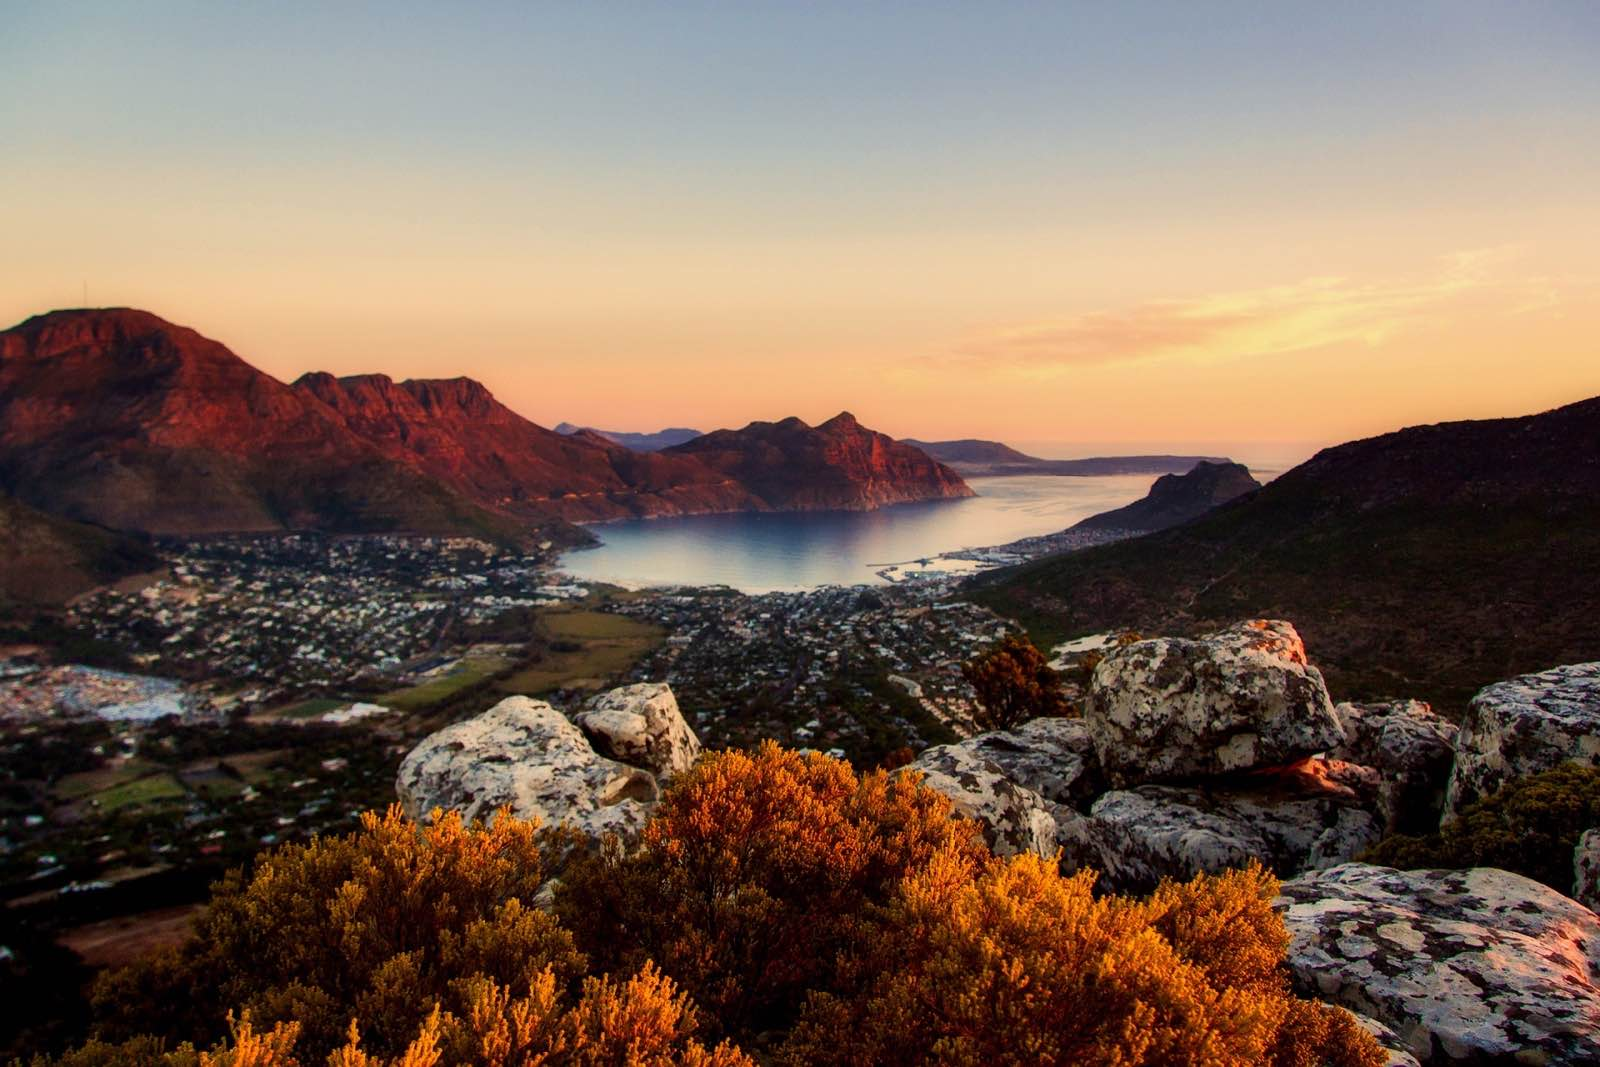 Cape Town 1 of 3 African cities in global City Nature Challenge 2019